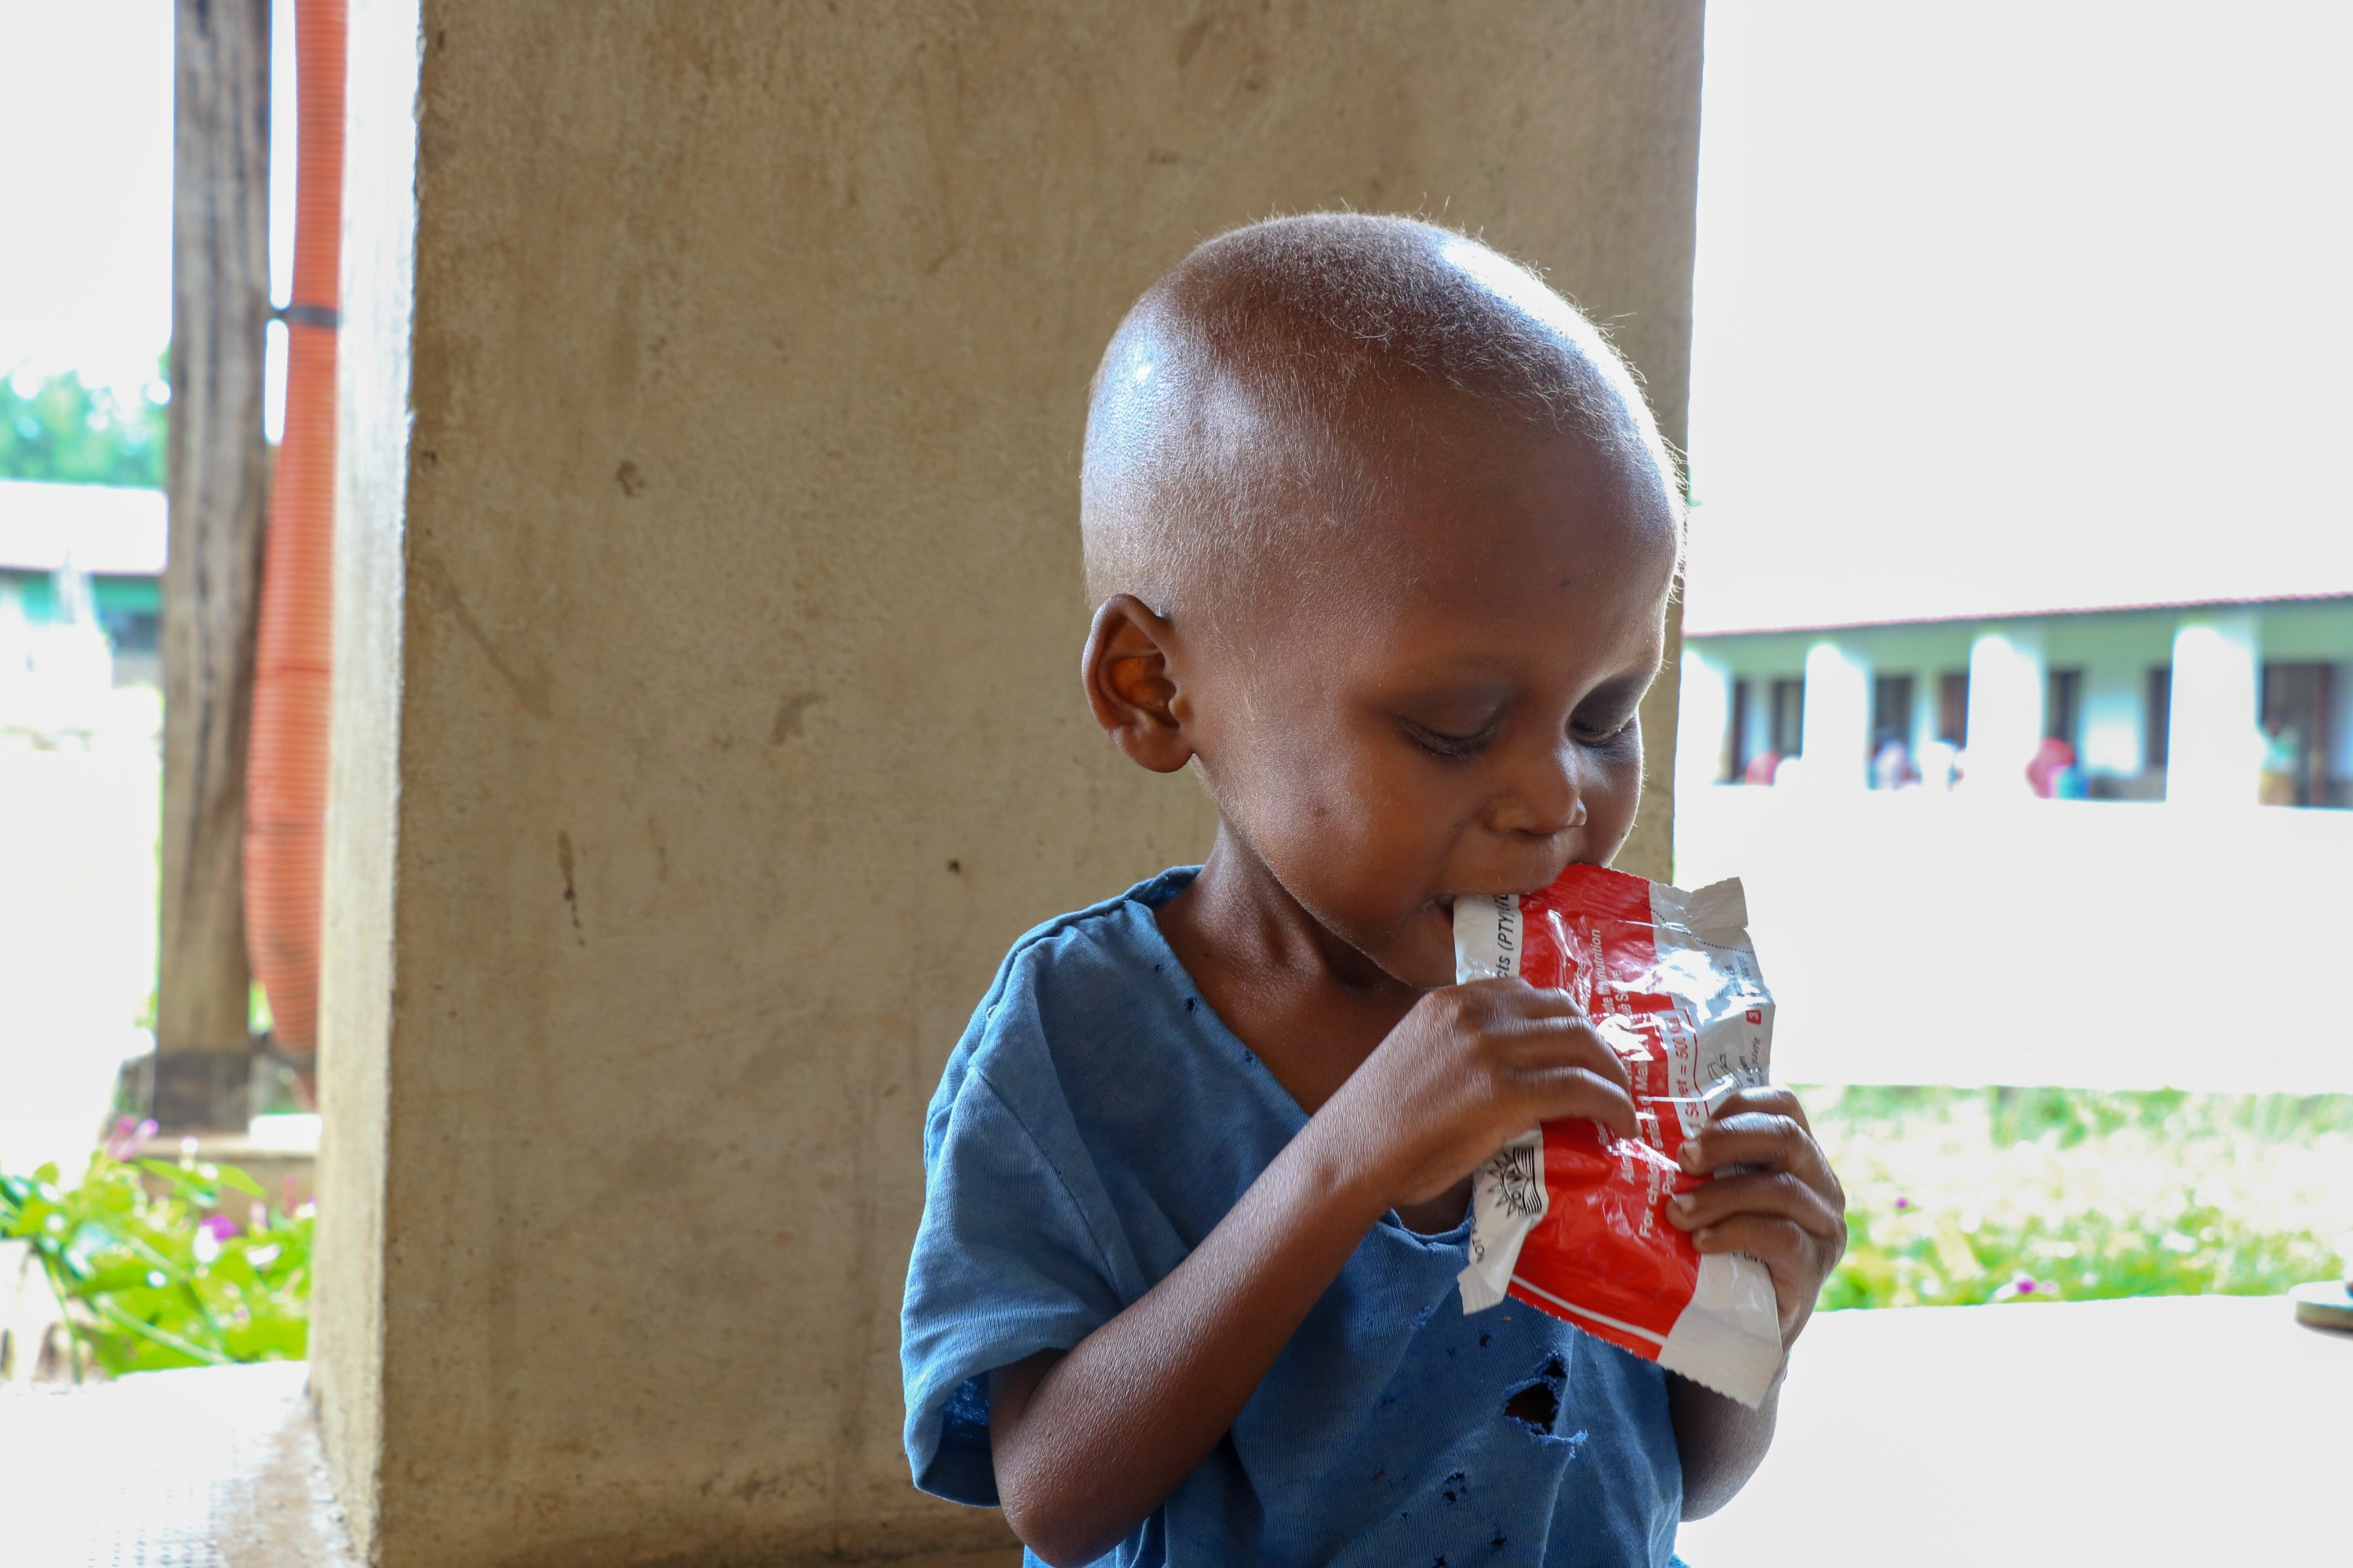 World Vision is supporting health centers and hospitals in Kasai Central to treat malnutrition